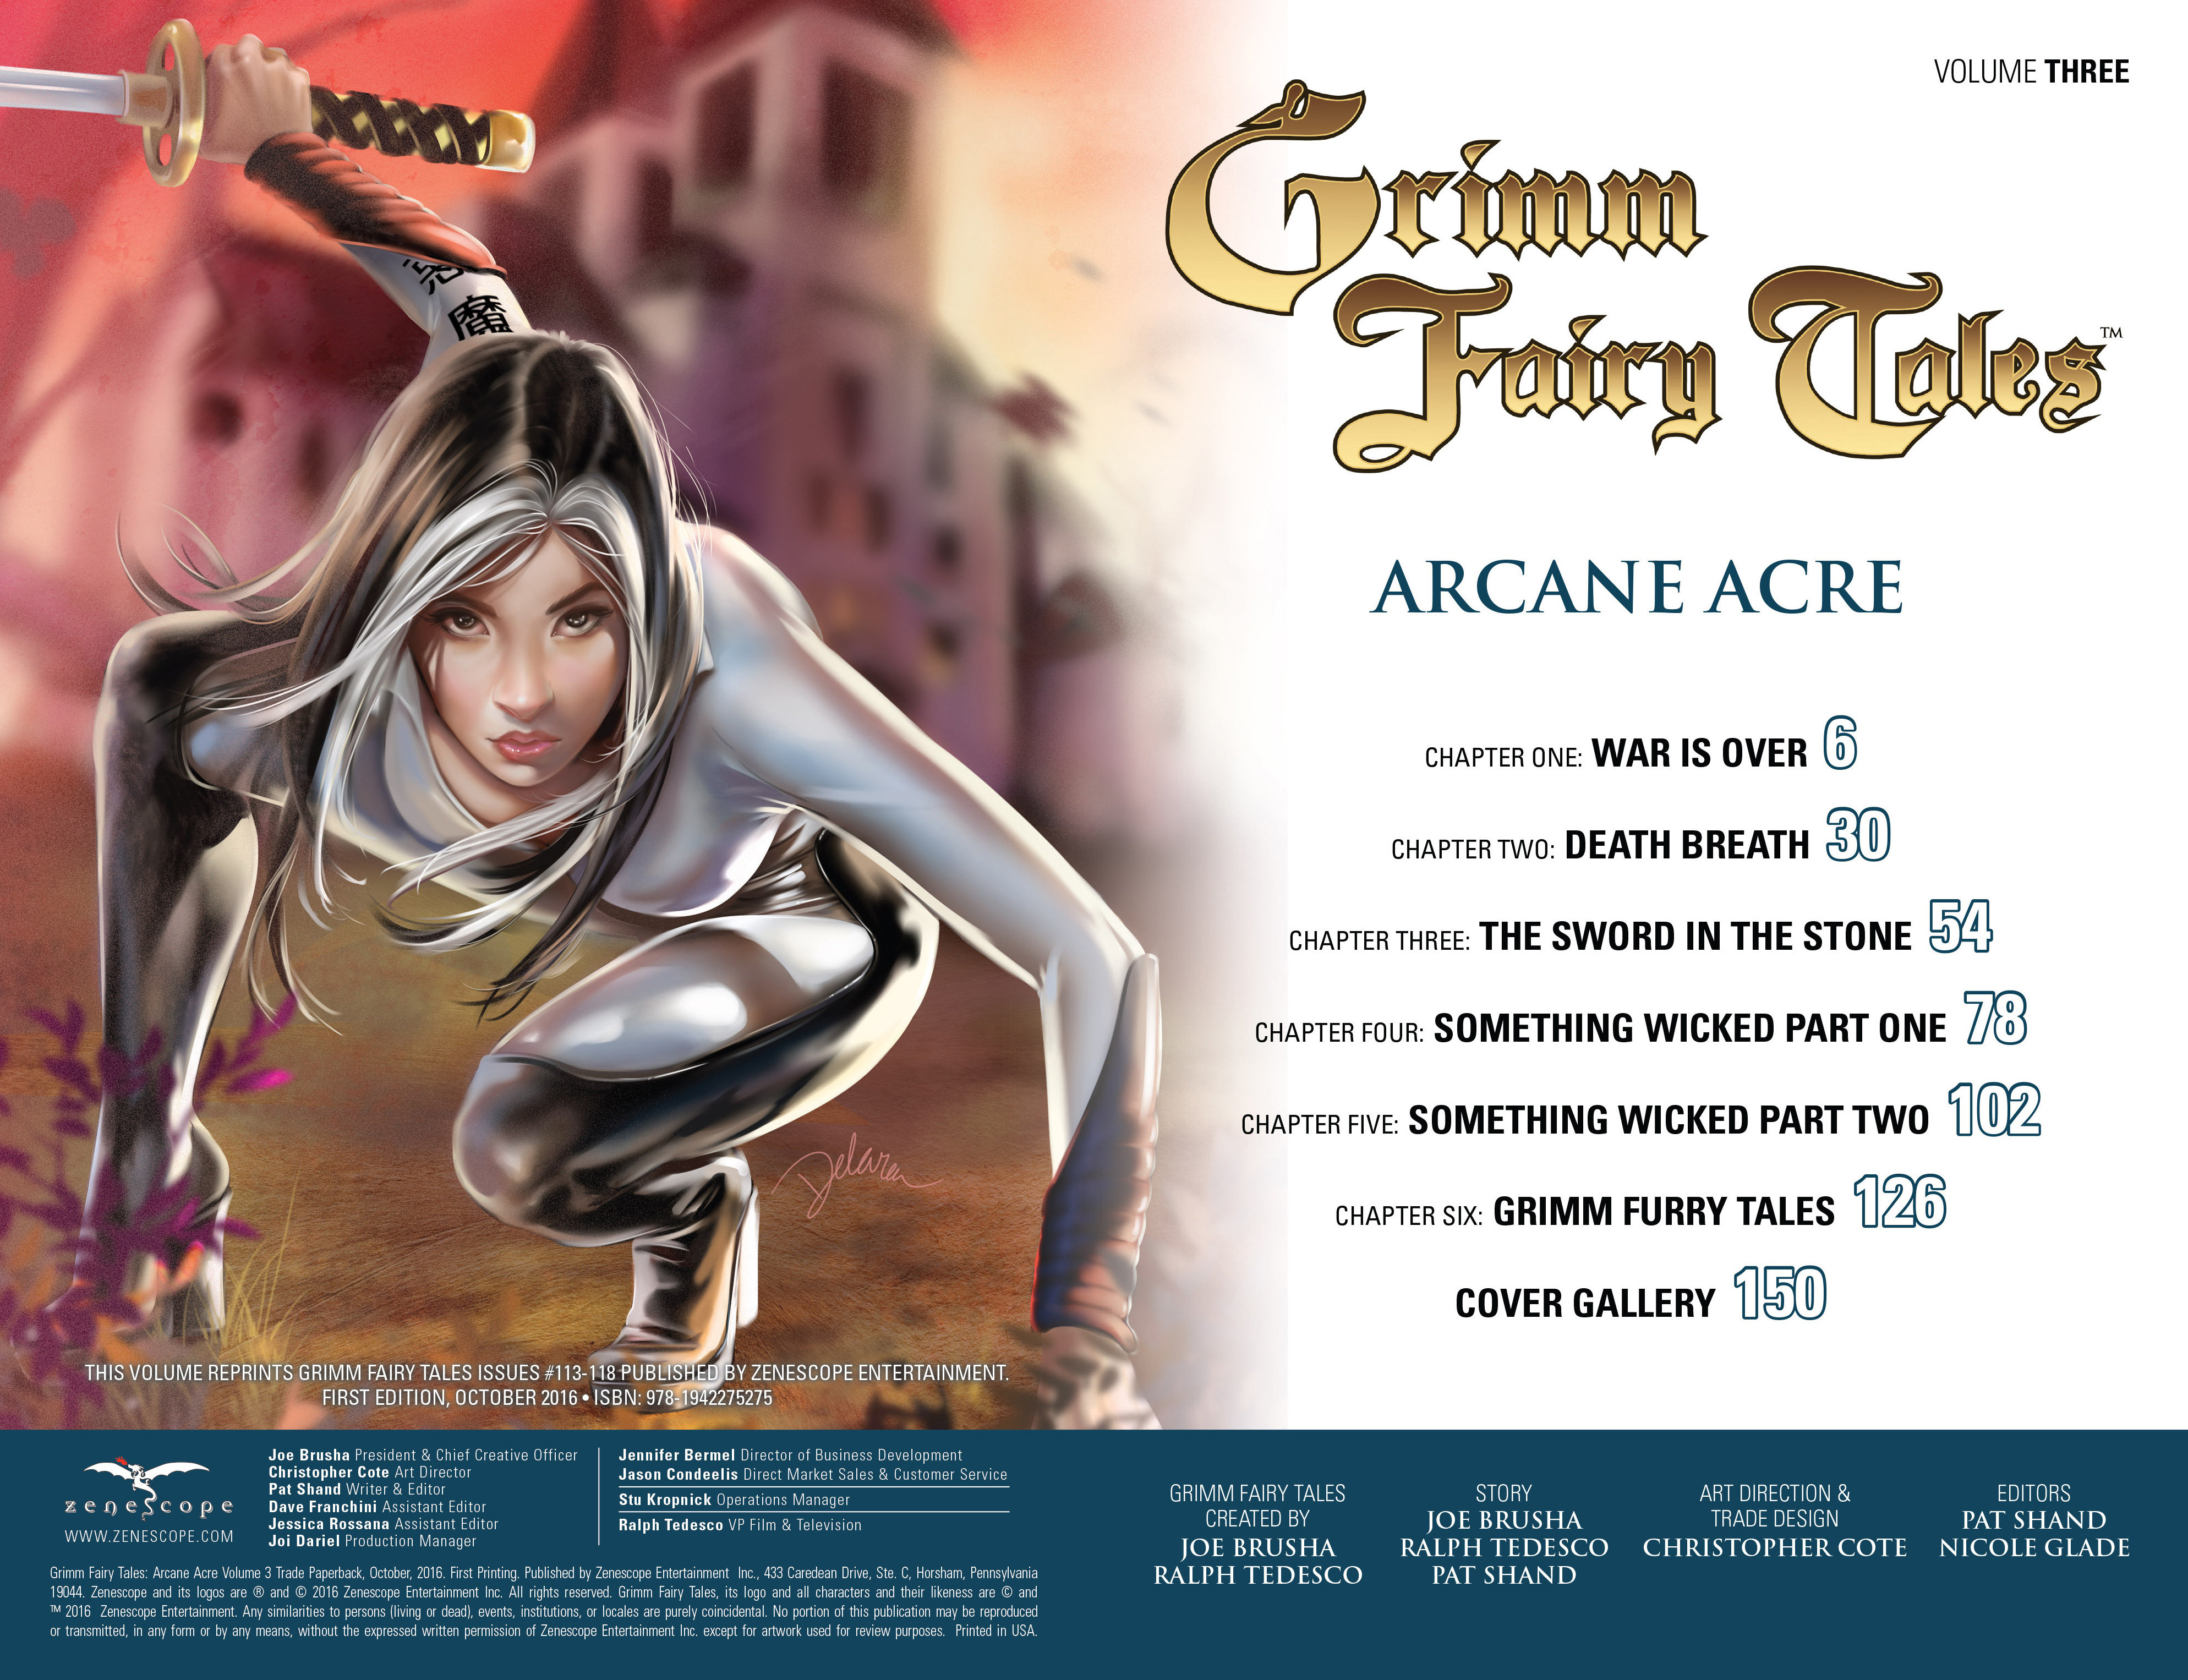 Read online Grimm Fairy Tales: Arcane Acre comic -  Issue # TPB 3 - 3